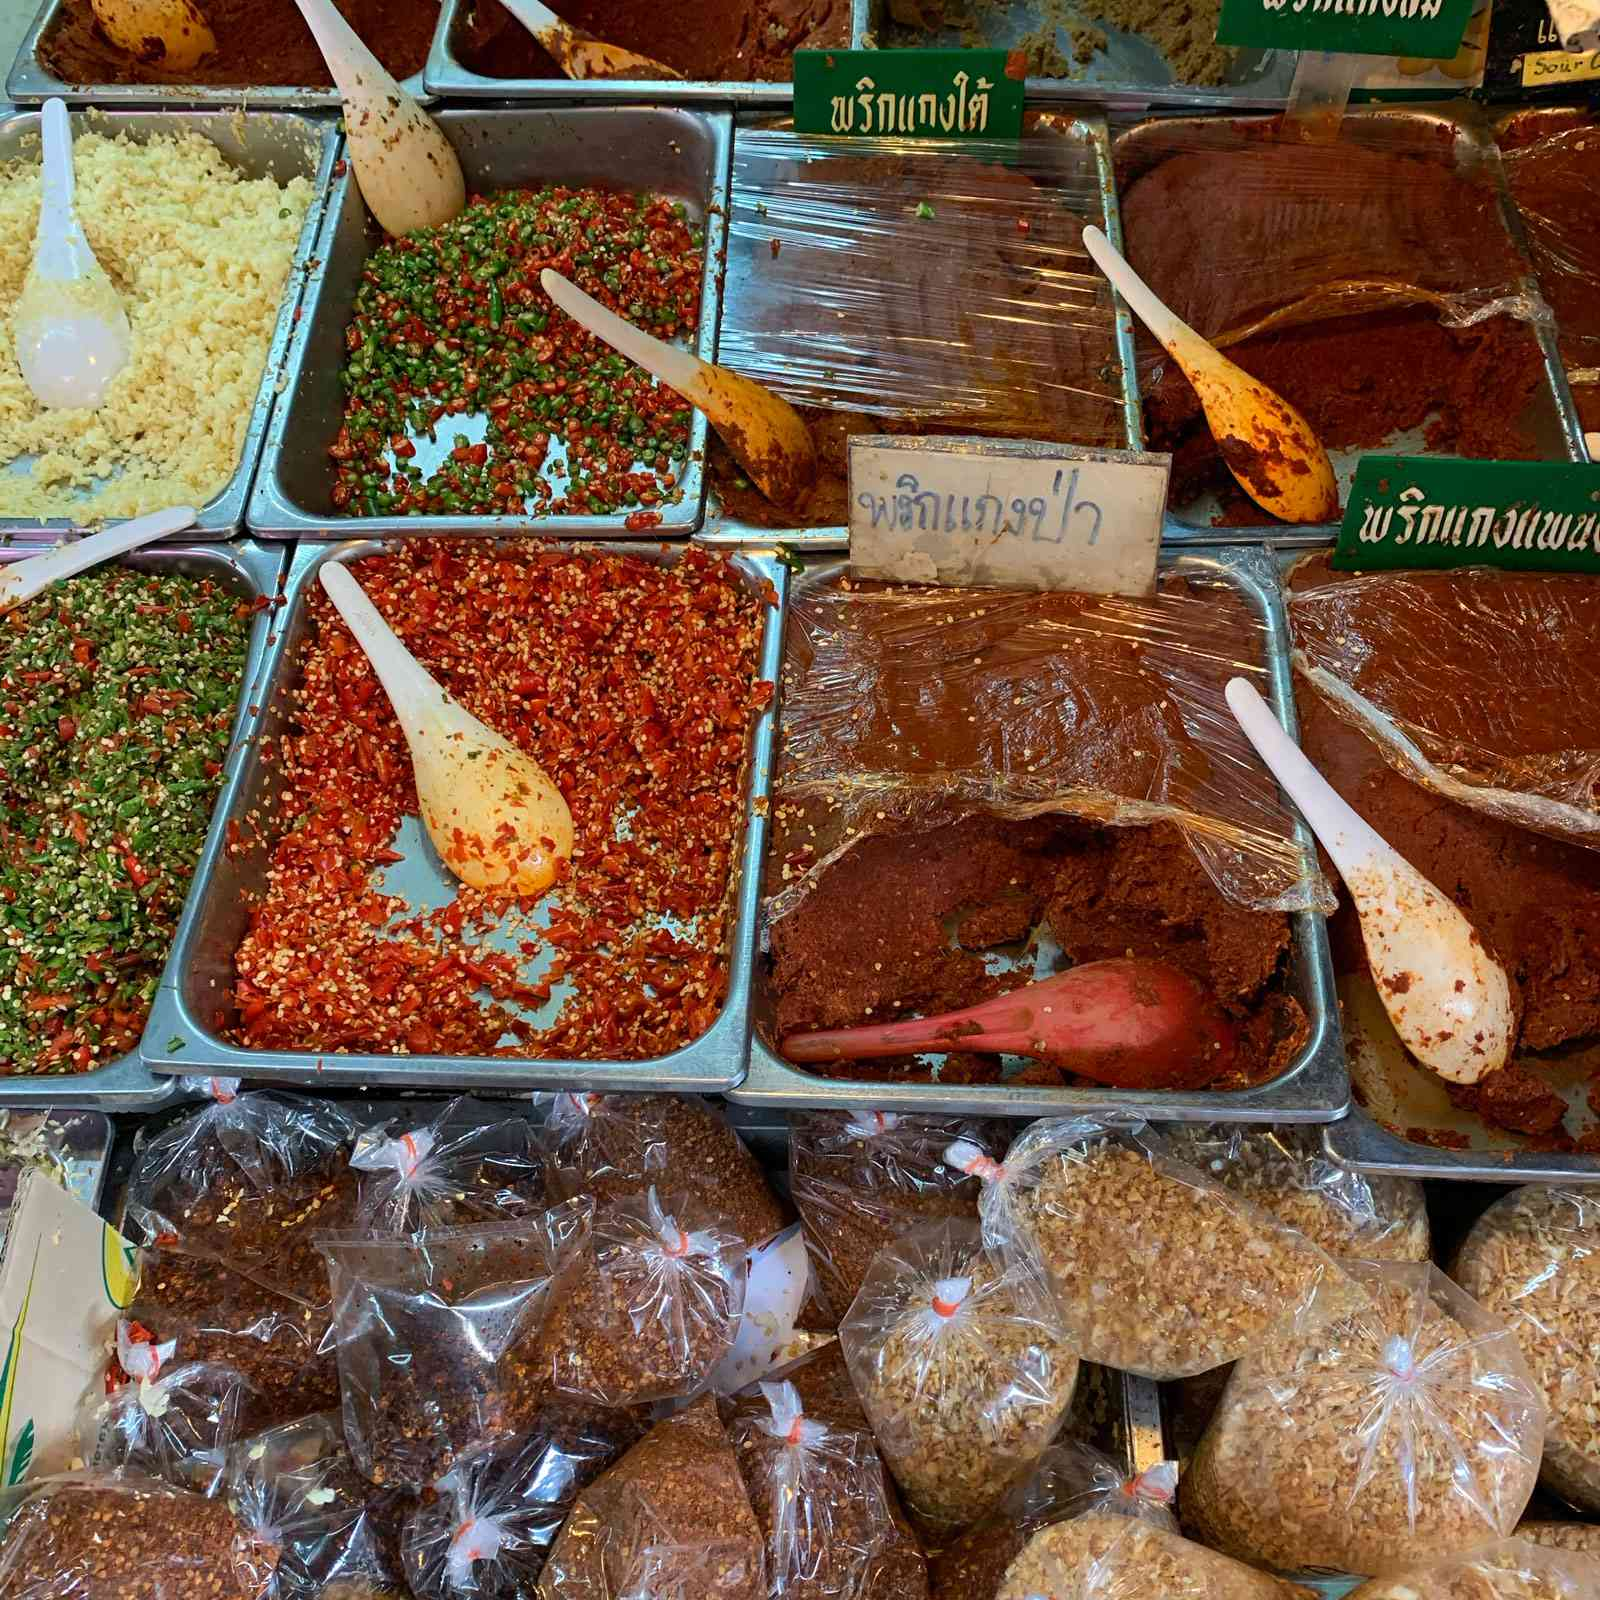 Chile paste at Thewet Market